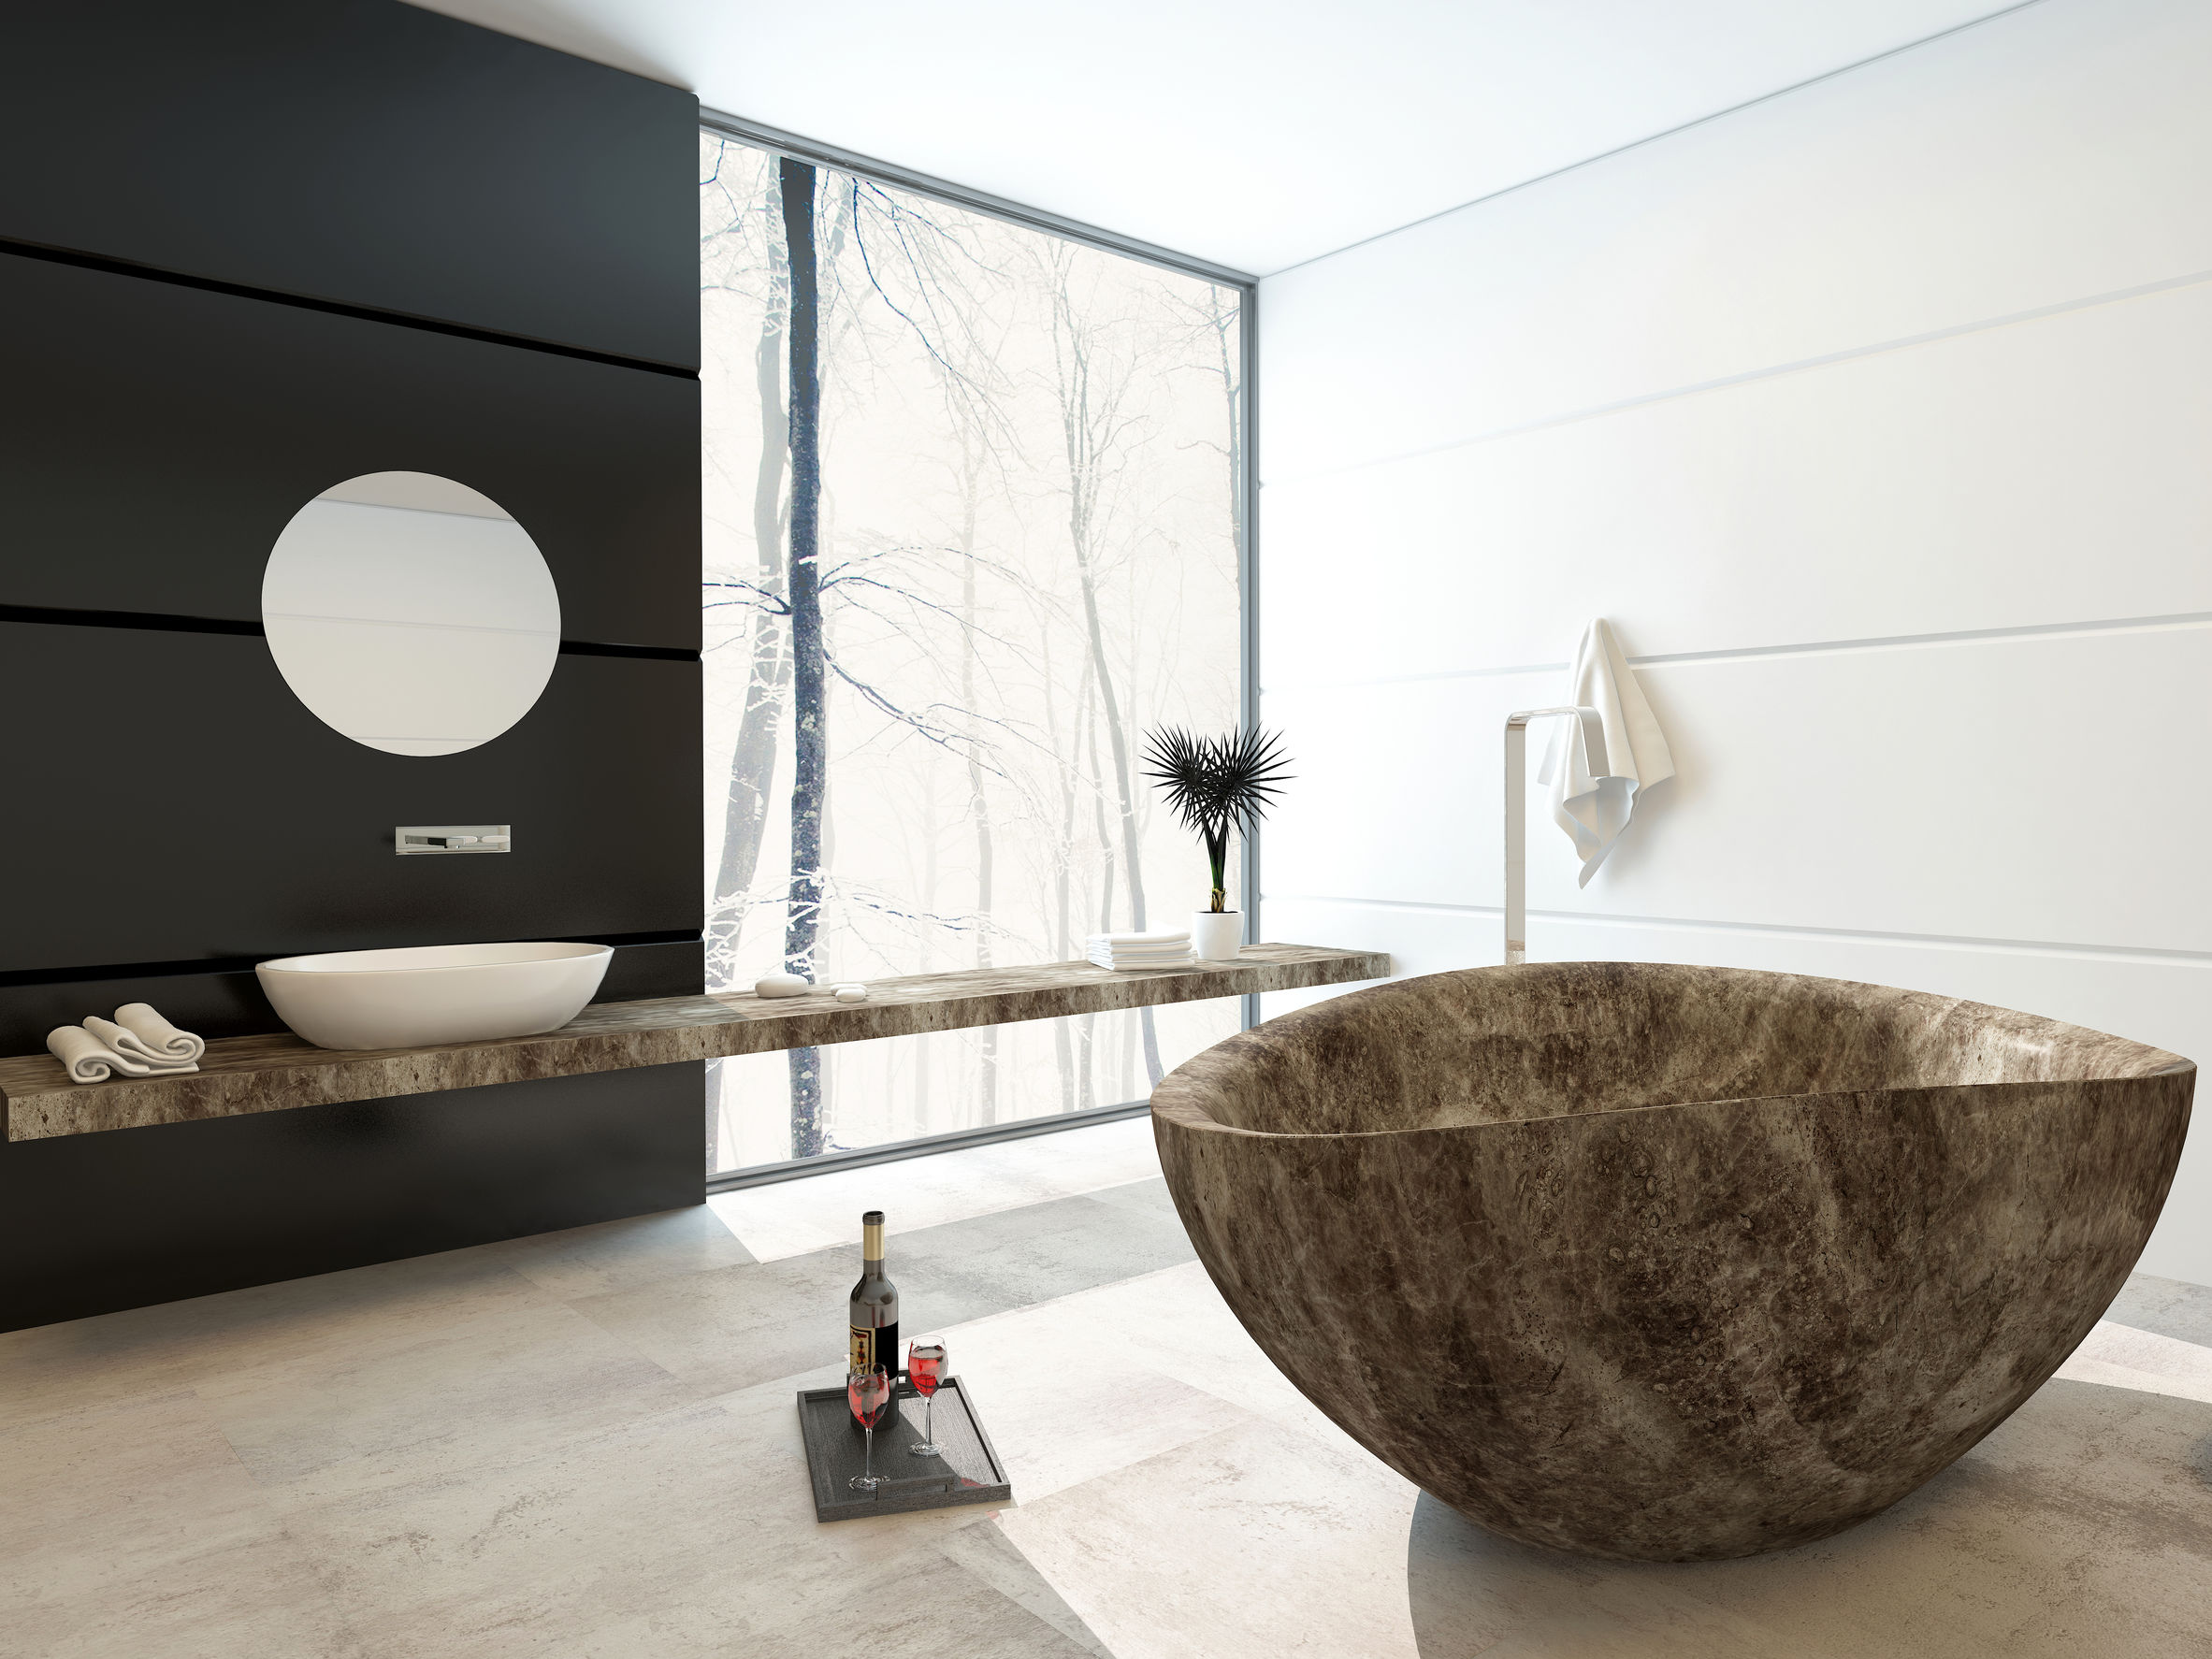 Modern marbled bathtub in a luxury bathroom